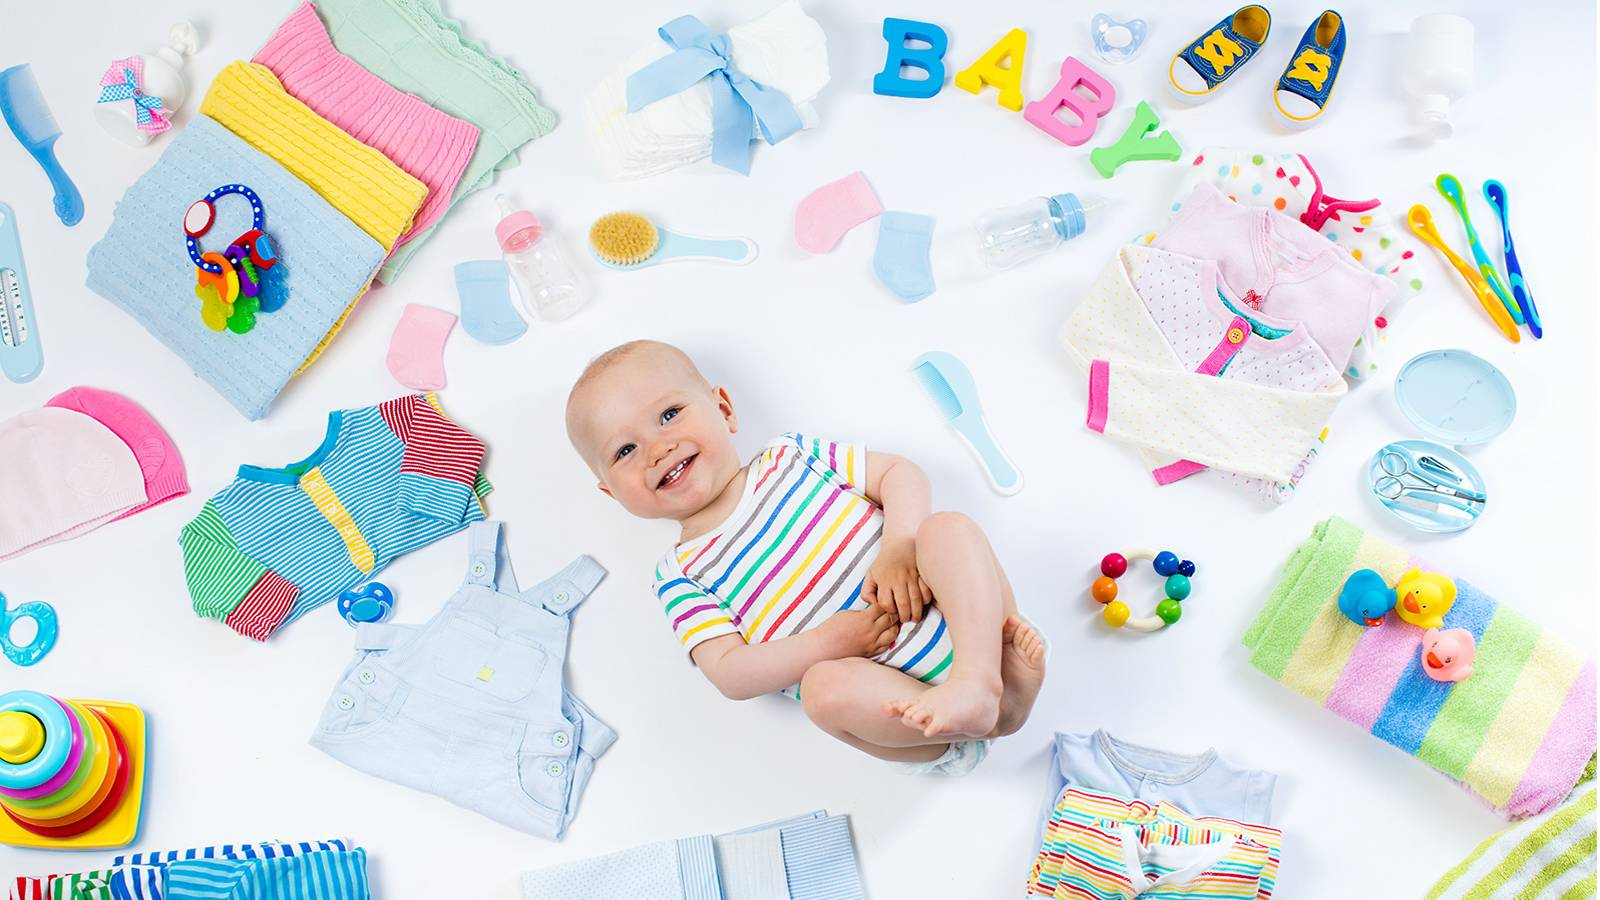 Babies-BUYER'S-GUIDE-8-baby-products-you-never-knew-you-needed-MAIN